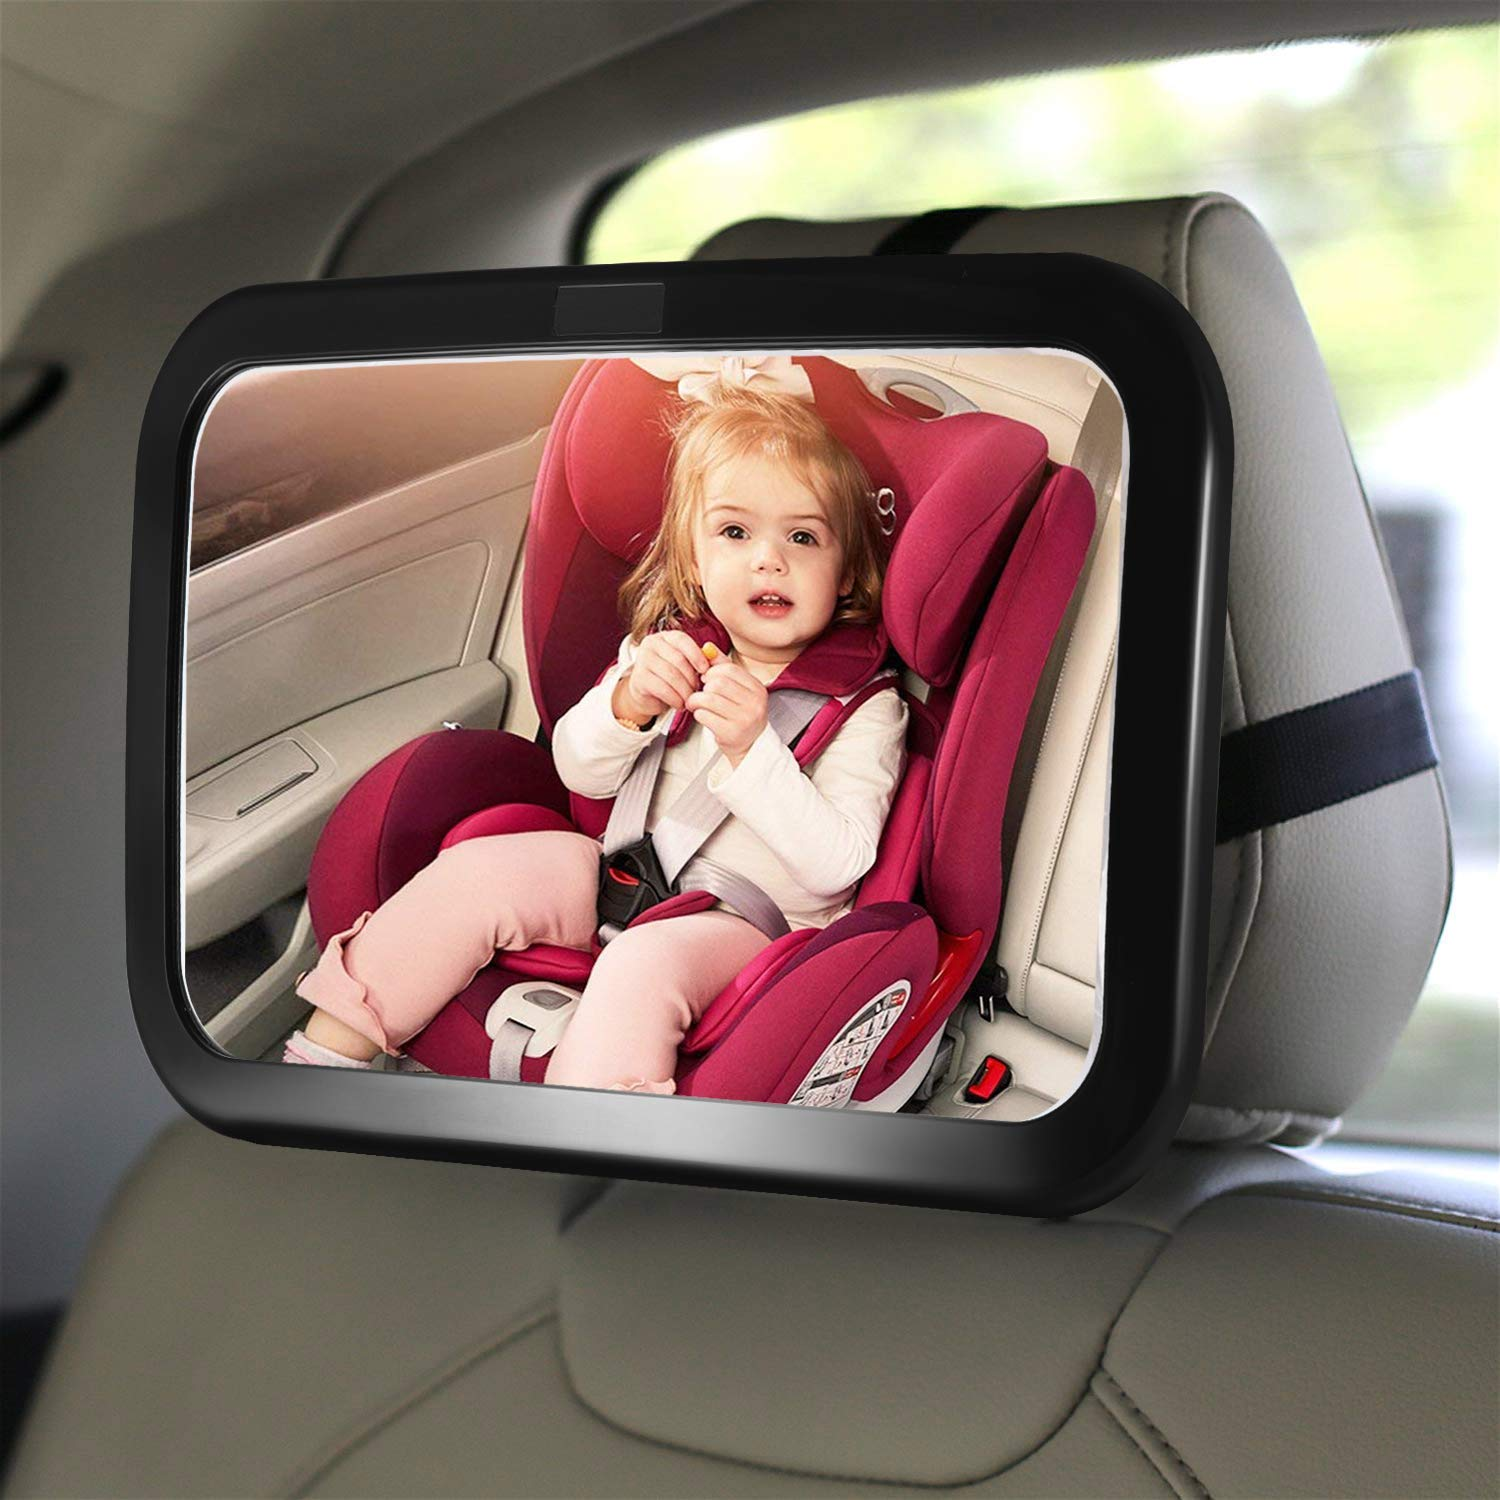 Fairycat Baby Backseat Mirror For Car View Rear Facing Infant In Car Backseat Best Newborn